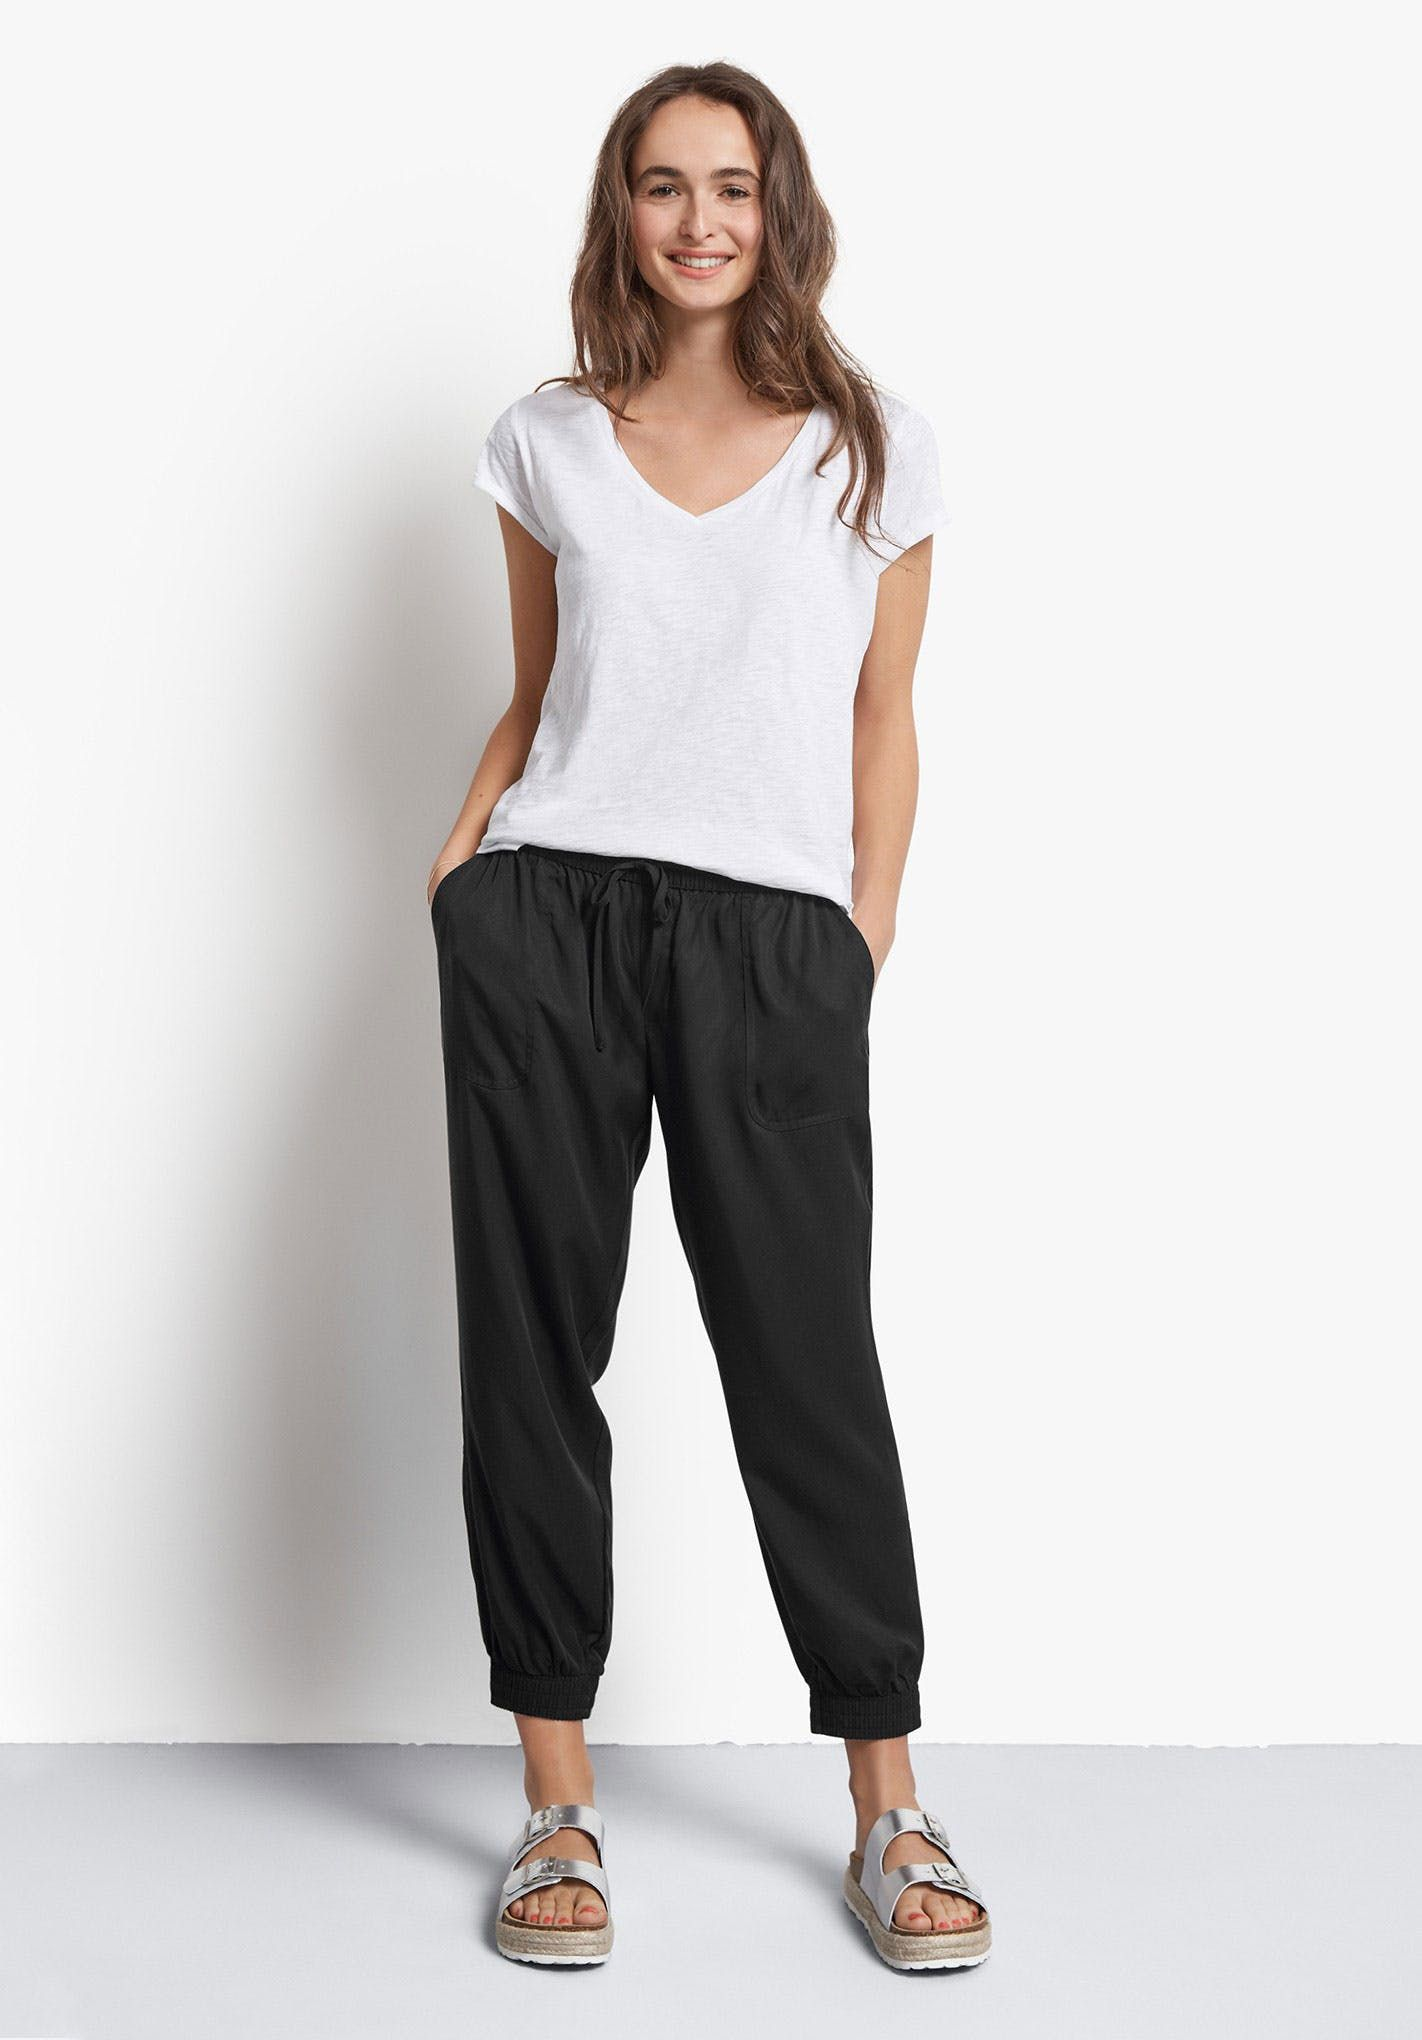 8ca90ff6e9ffa For a totally relaxed sports luxe look, these trousers are the perfect  choice to complement your existing everyday wardrobe. Just add your  favourite tee and ...